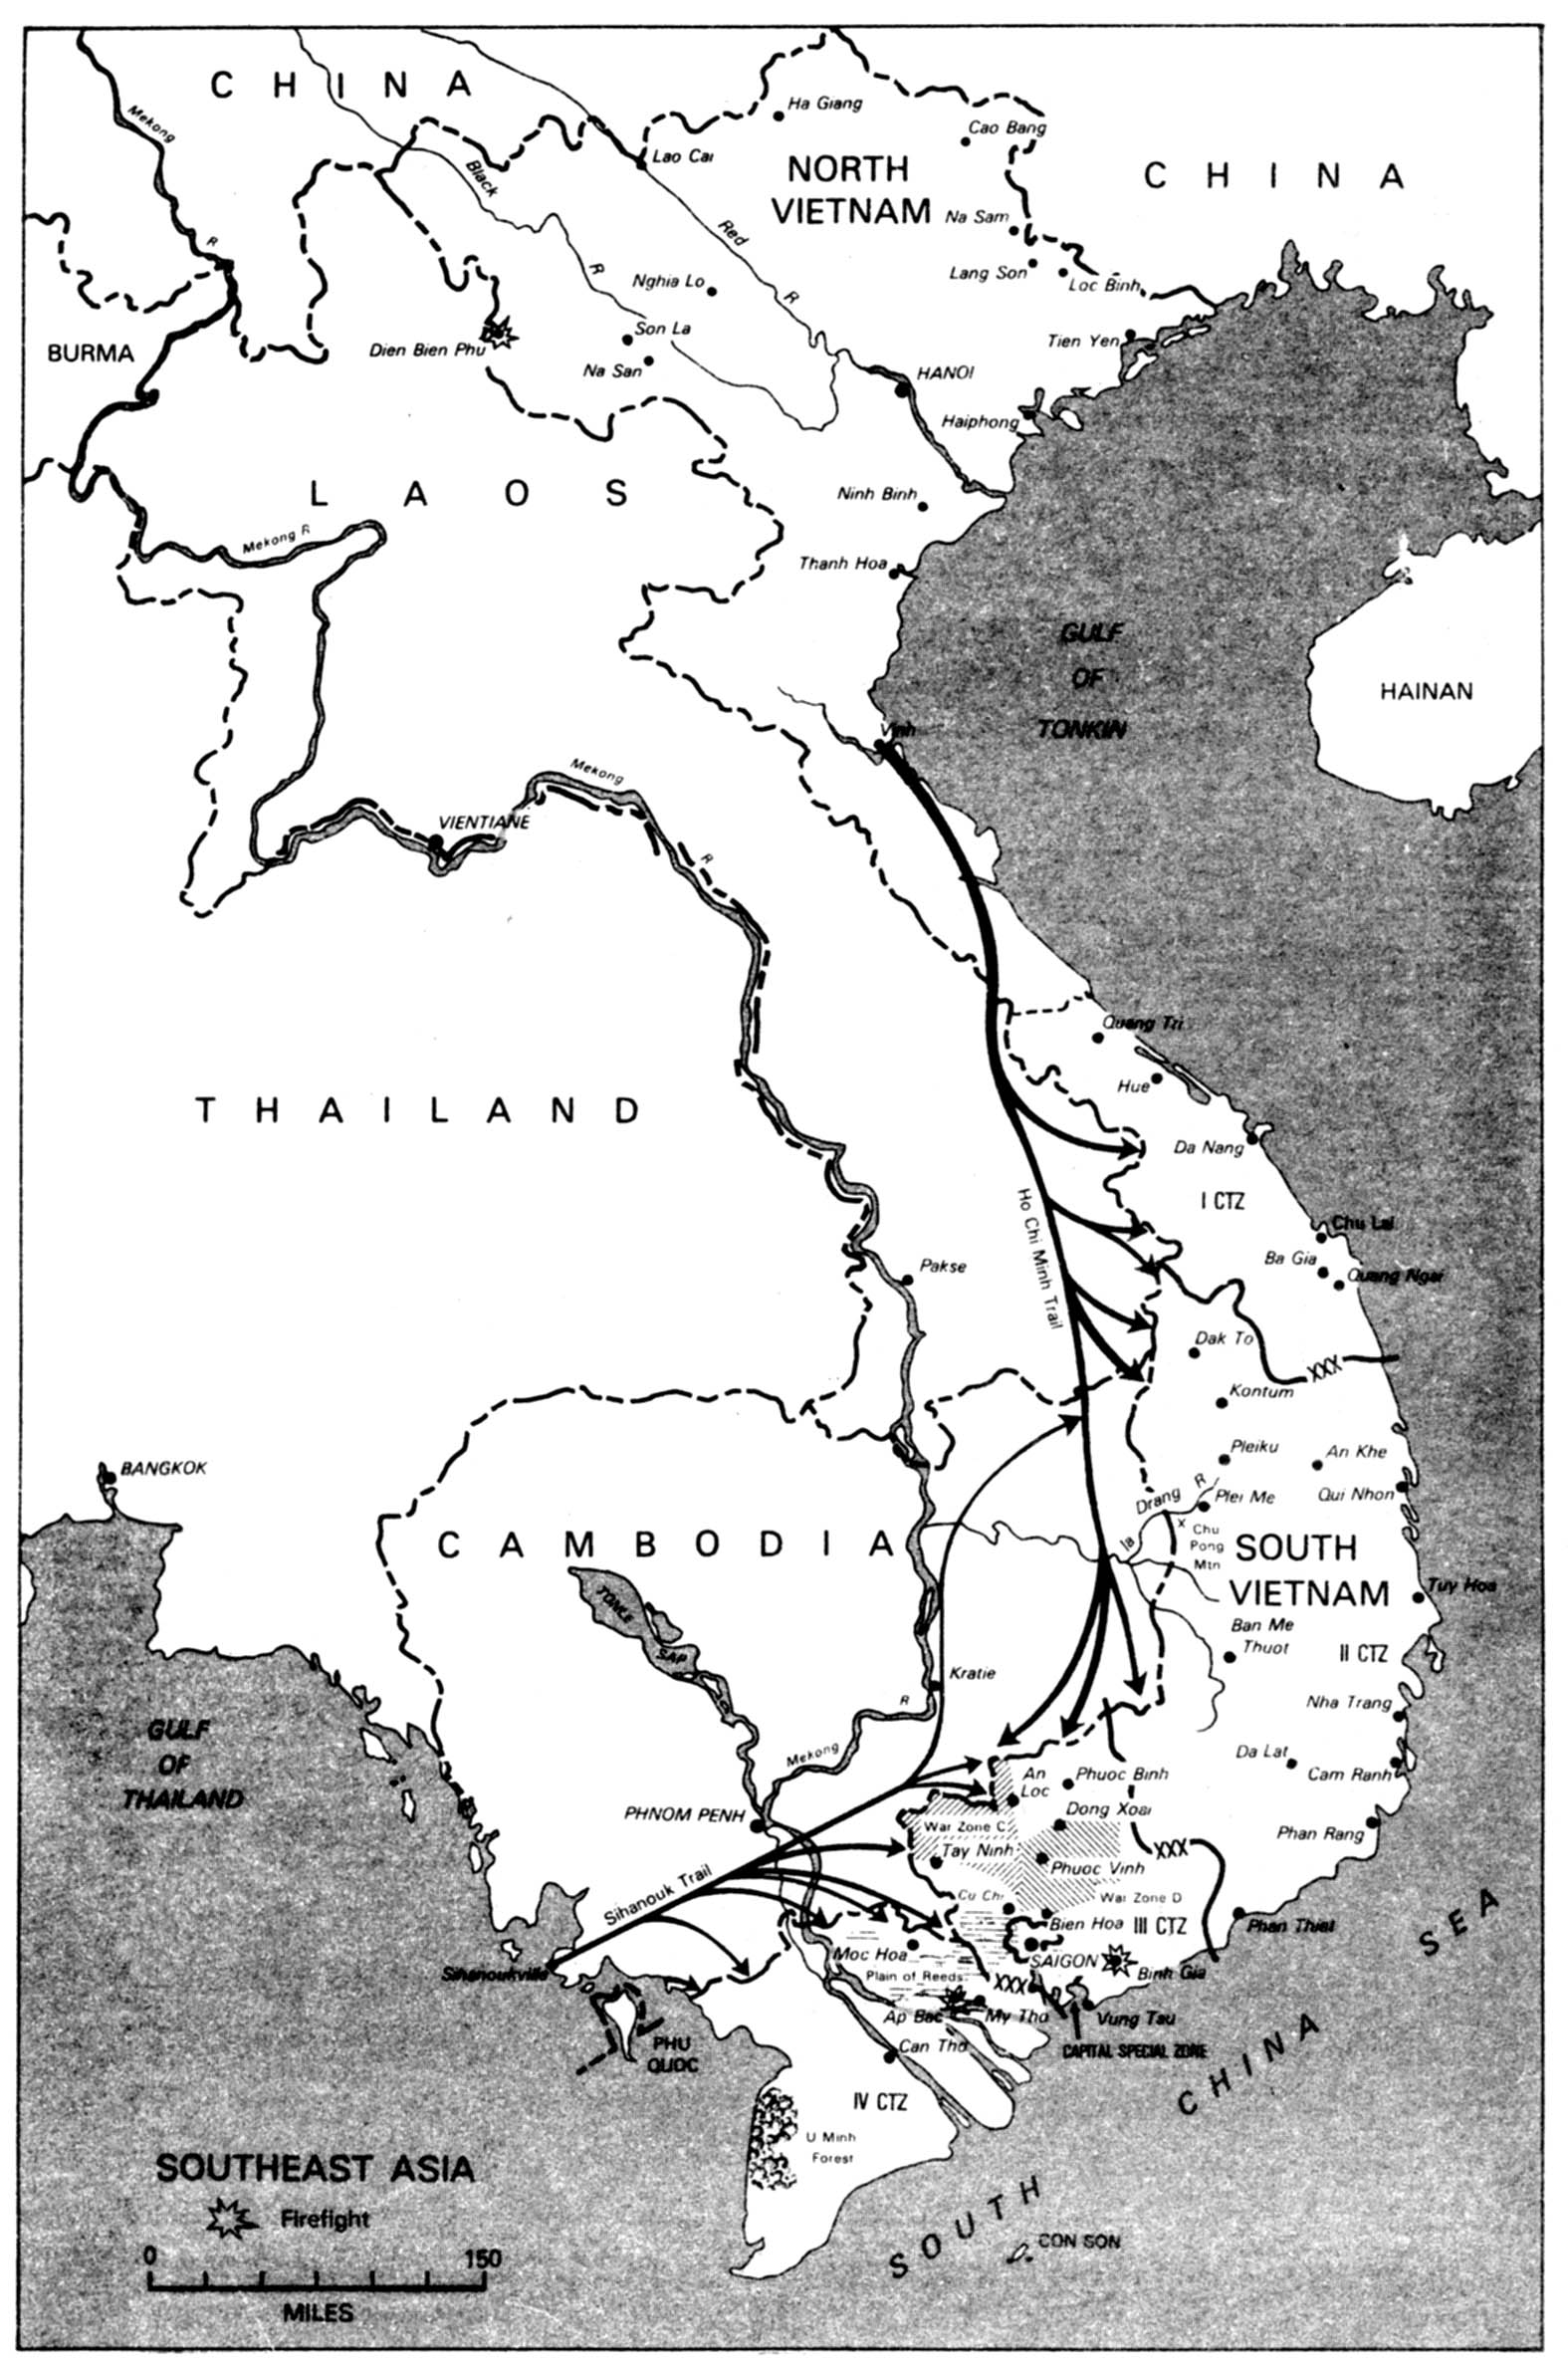 Map Depicting Plei Me Vietnam War American History Famous Historical Events Geography Visual Arts